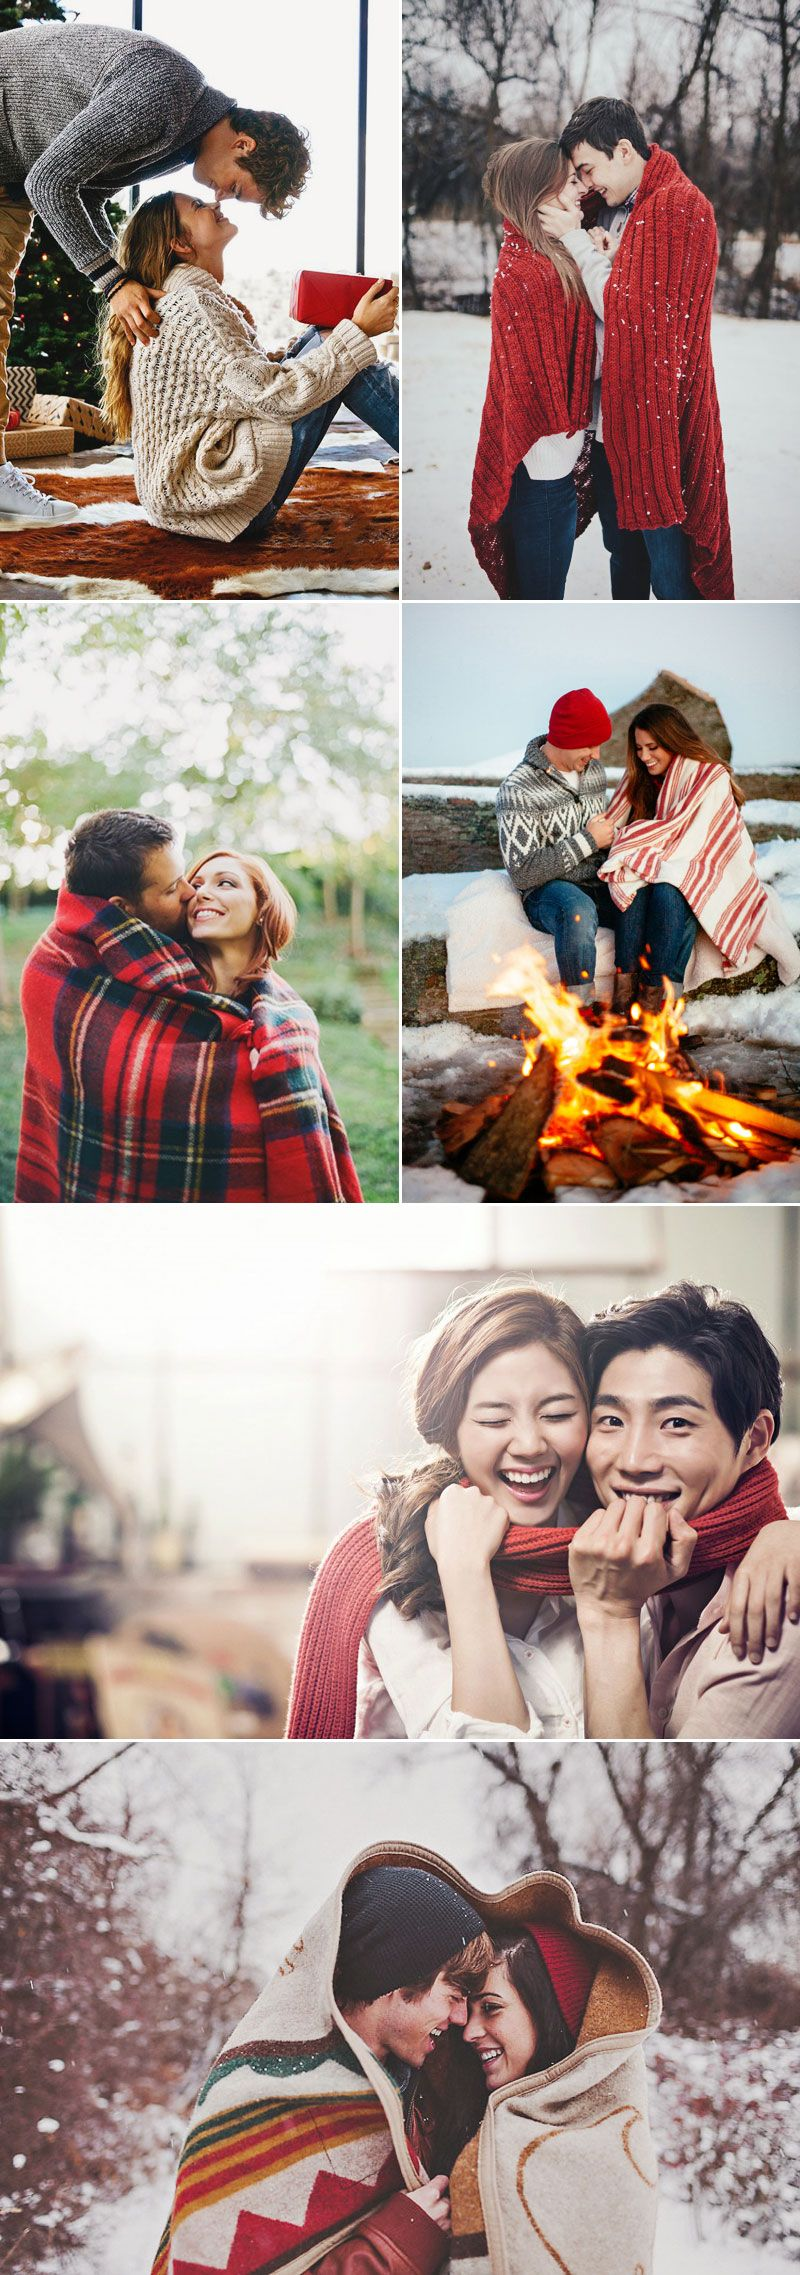 20 Cute Christmas Photo Ideas for Couples to Show Love